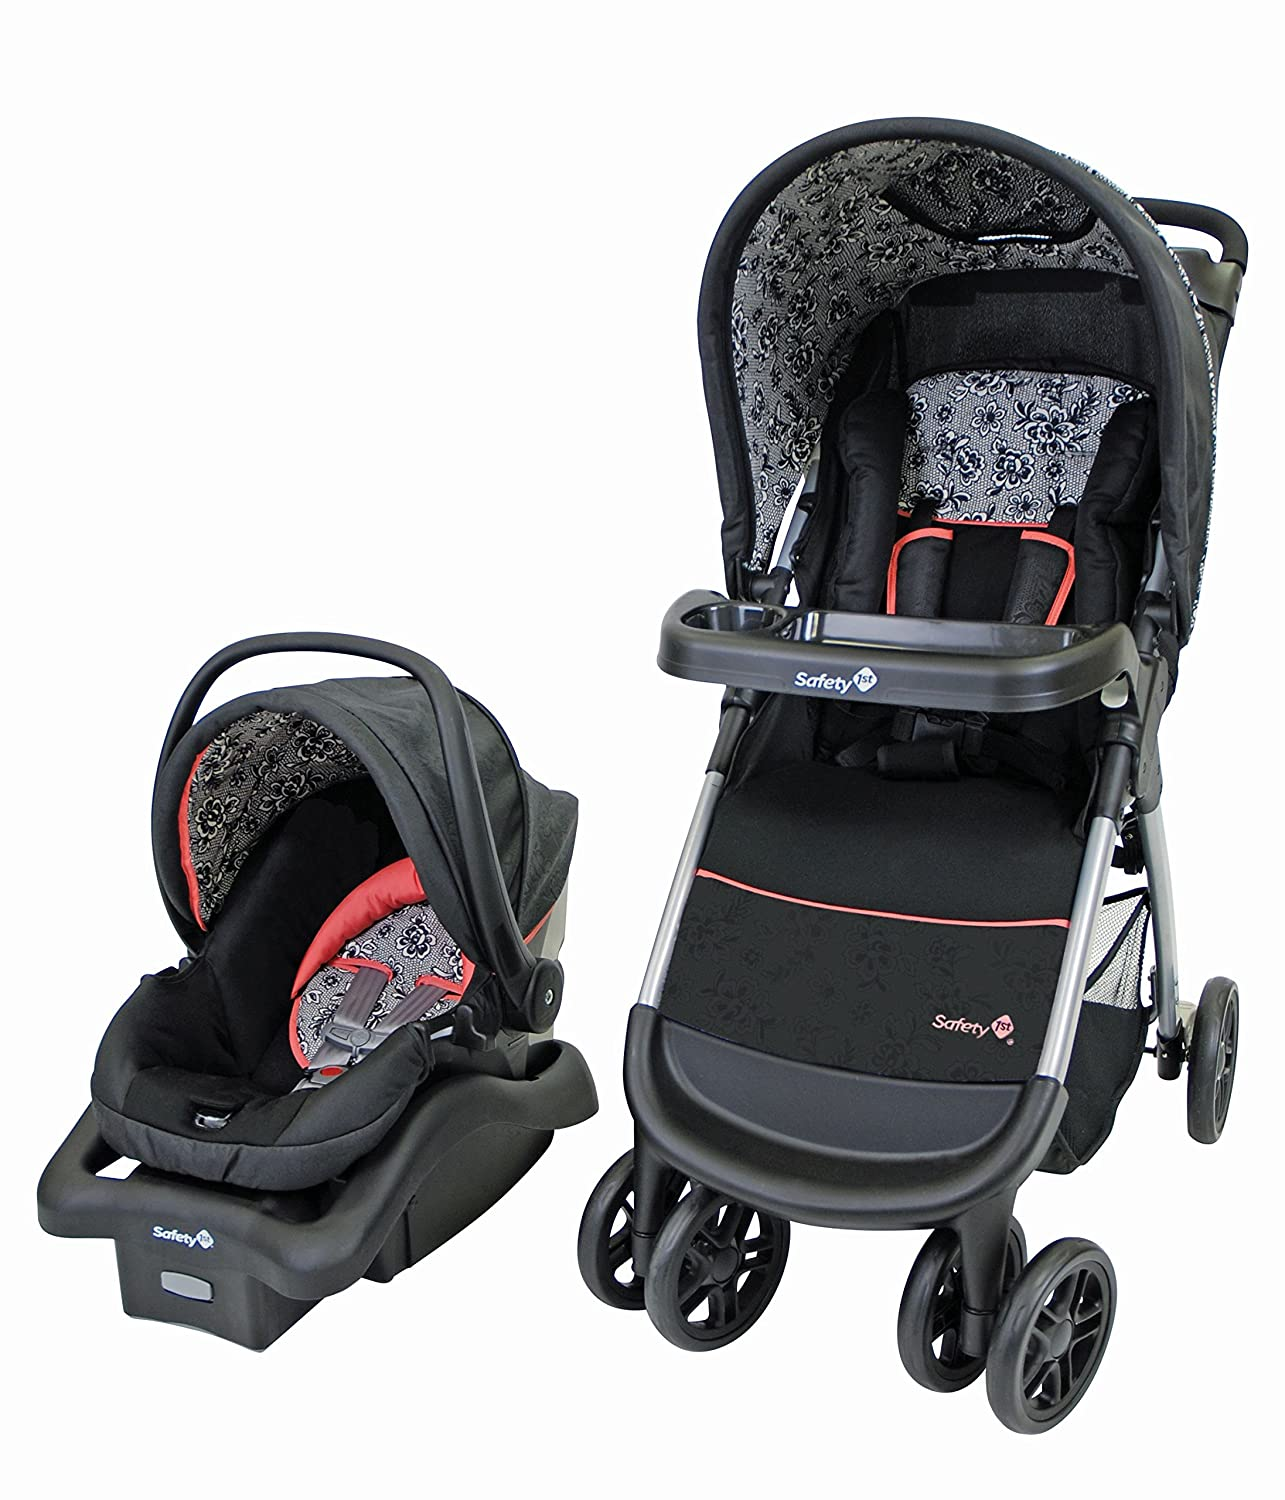 Safety 1st 01281CCZF Amble Quad Travel System, Gentle Lace Dorel Juvenile